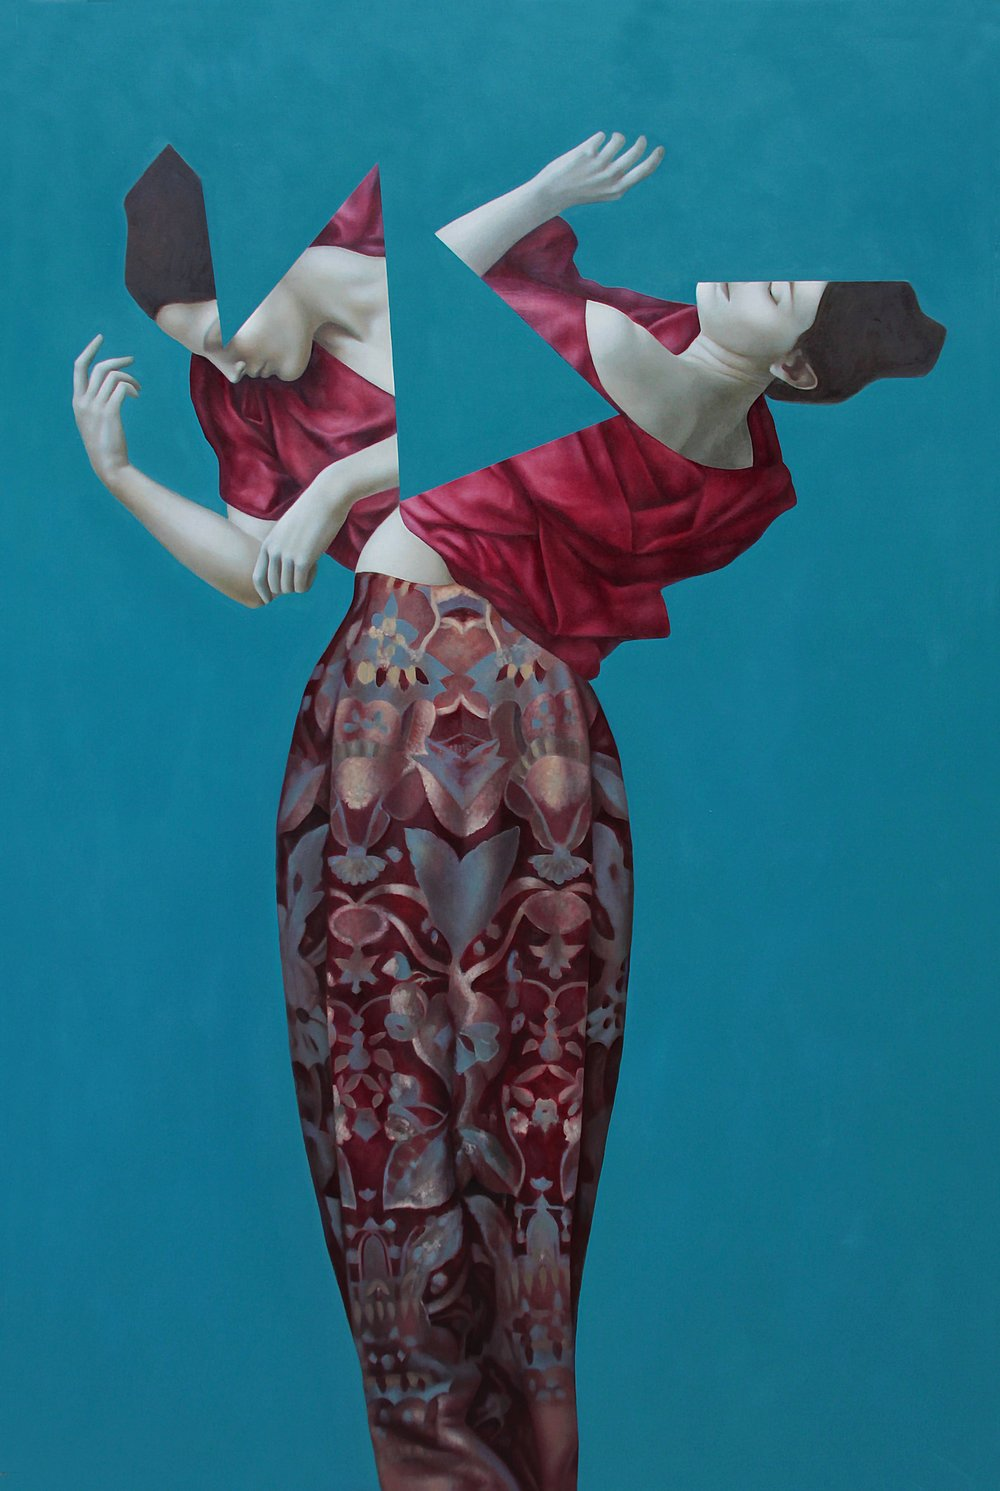 Mercurius Blue, oil on canvas, 180x120cm, 2015